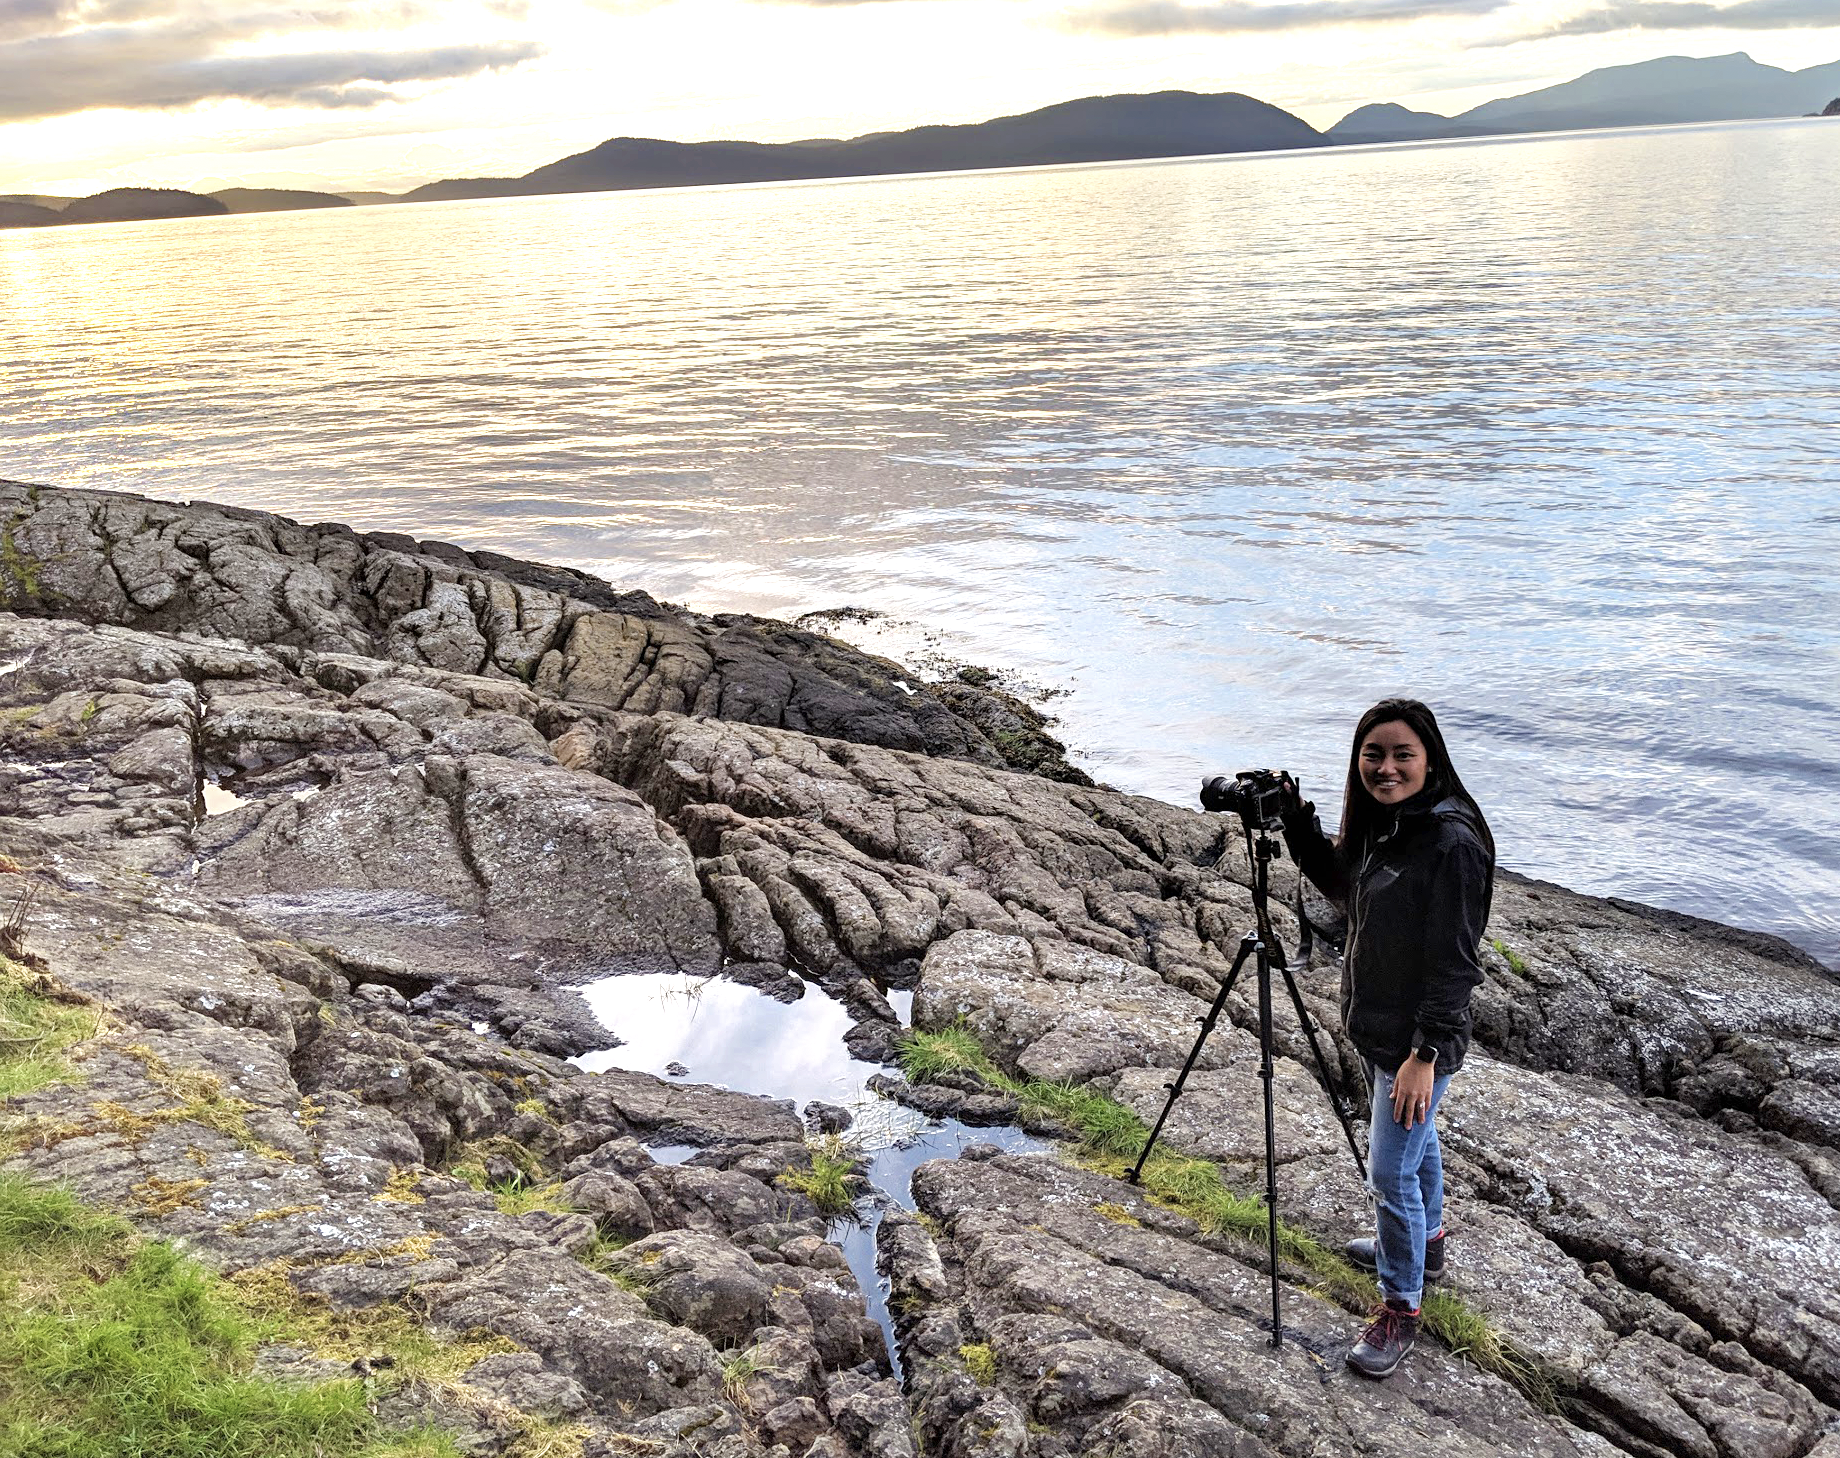 Here I am with my DSLR Outdoor Camera shooting the sunset over the San Juan Islands